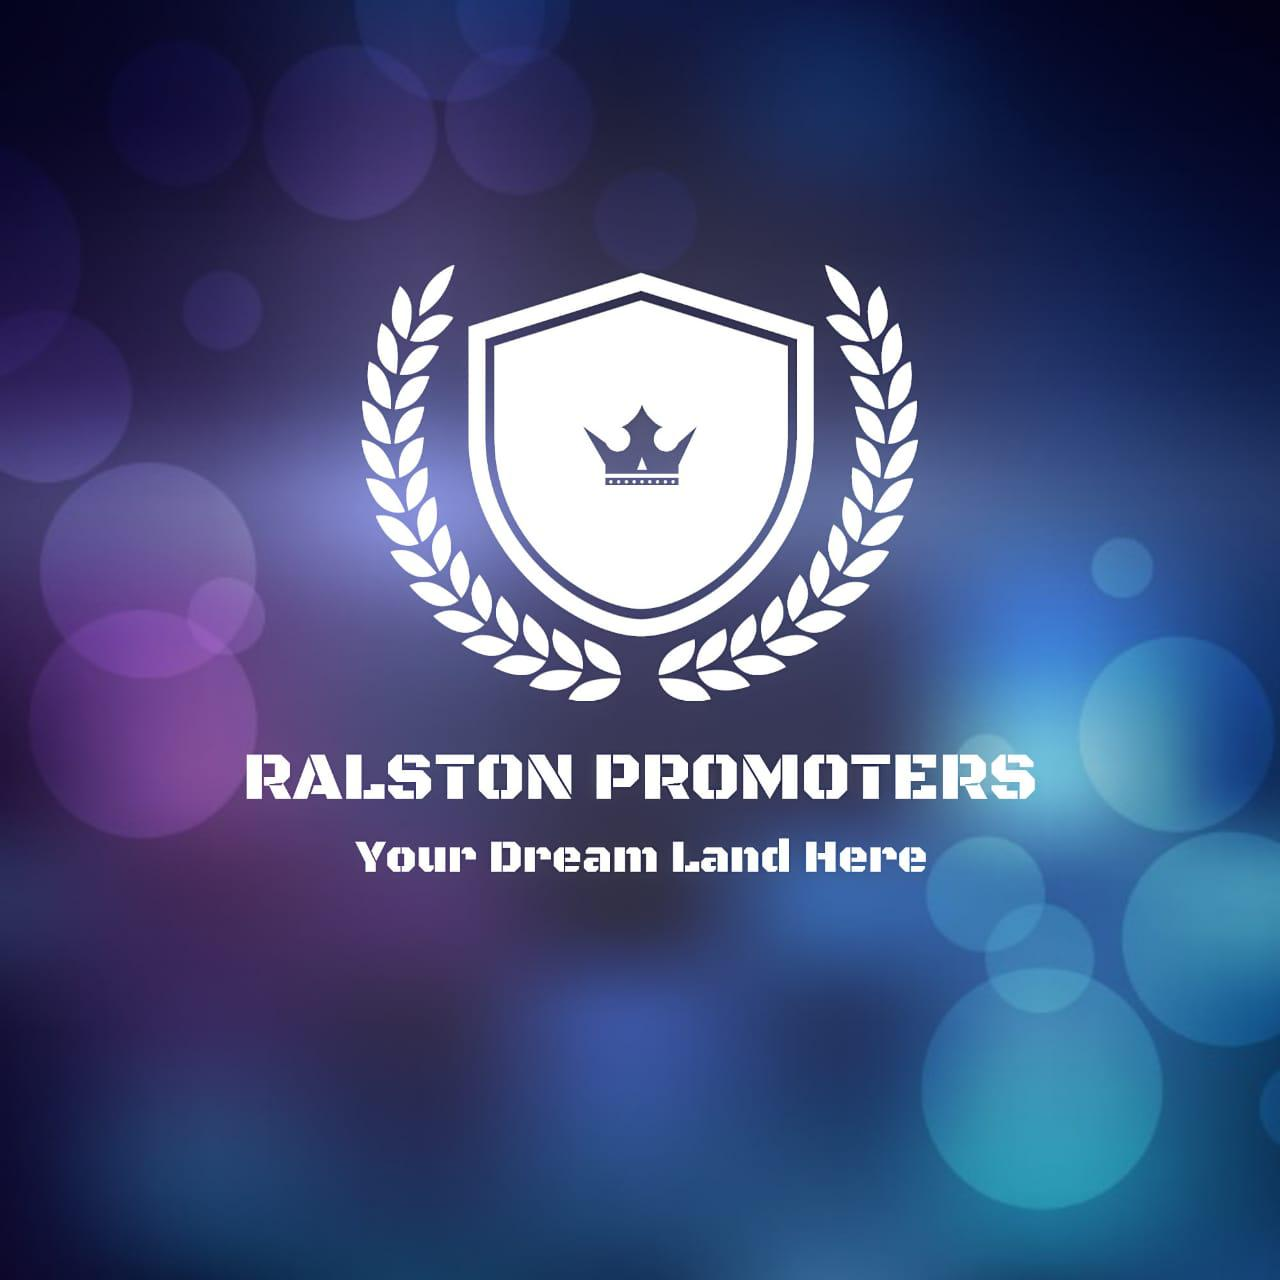 RALSTON PROMOTERS Logo